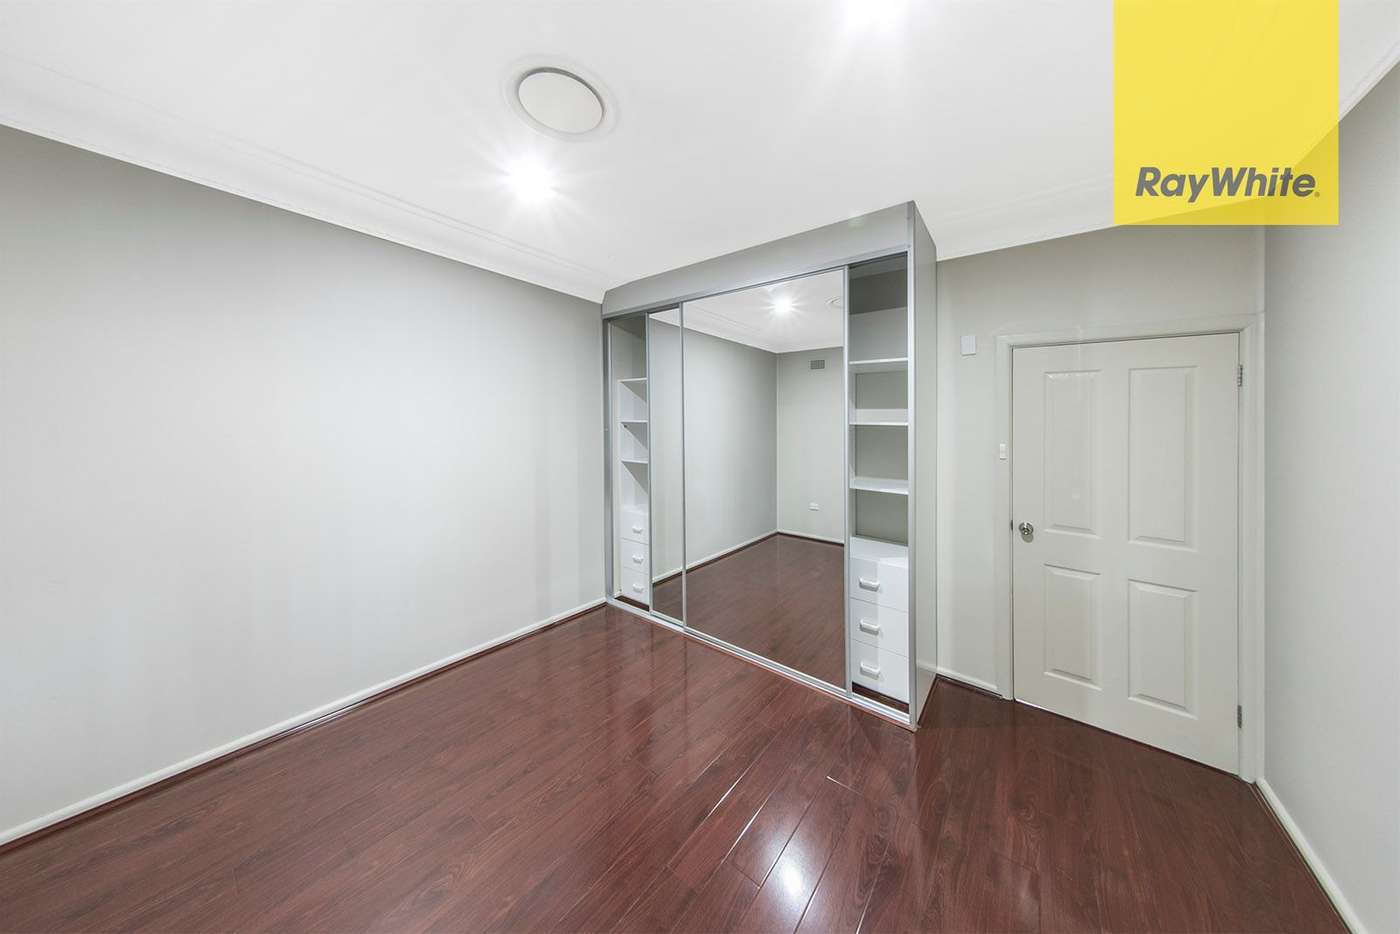 Seventh view of Homely house listing, 9 Whitworth Street, Westmead NSW 2145